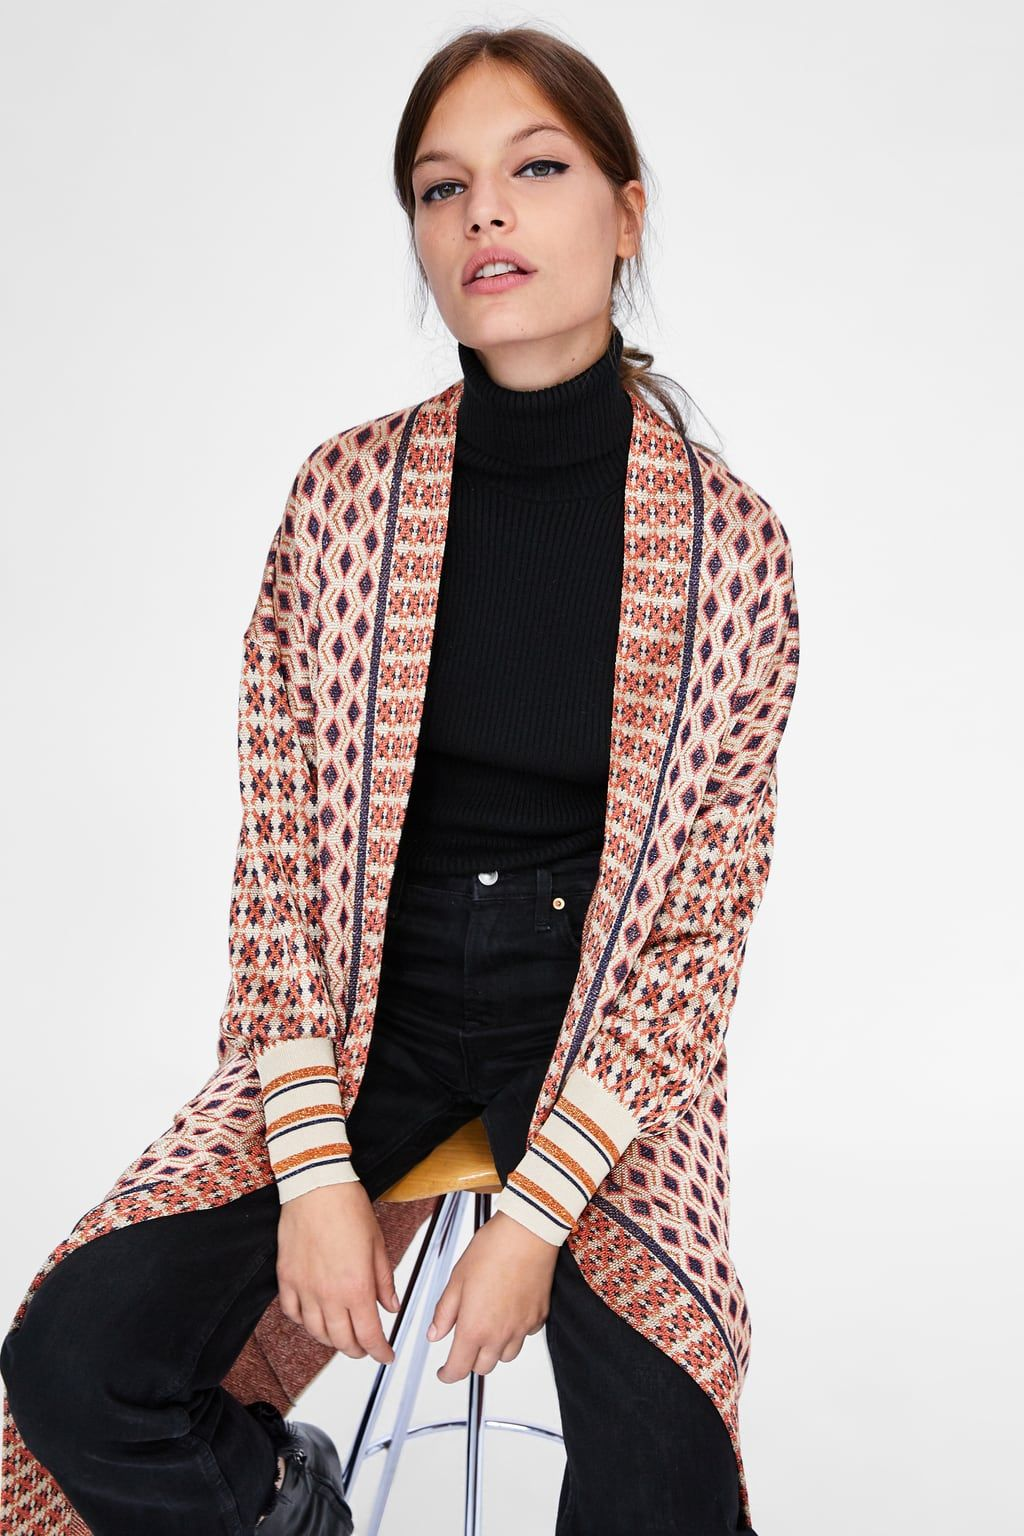 Special edition jacquard coat   Winter is coming in 2019